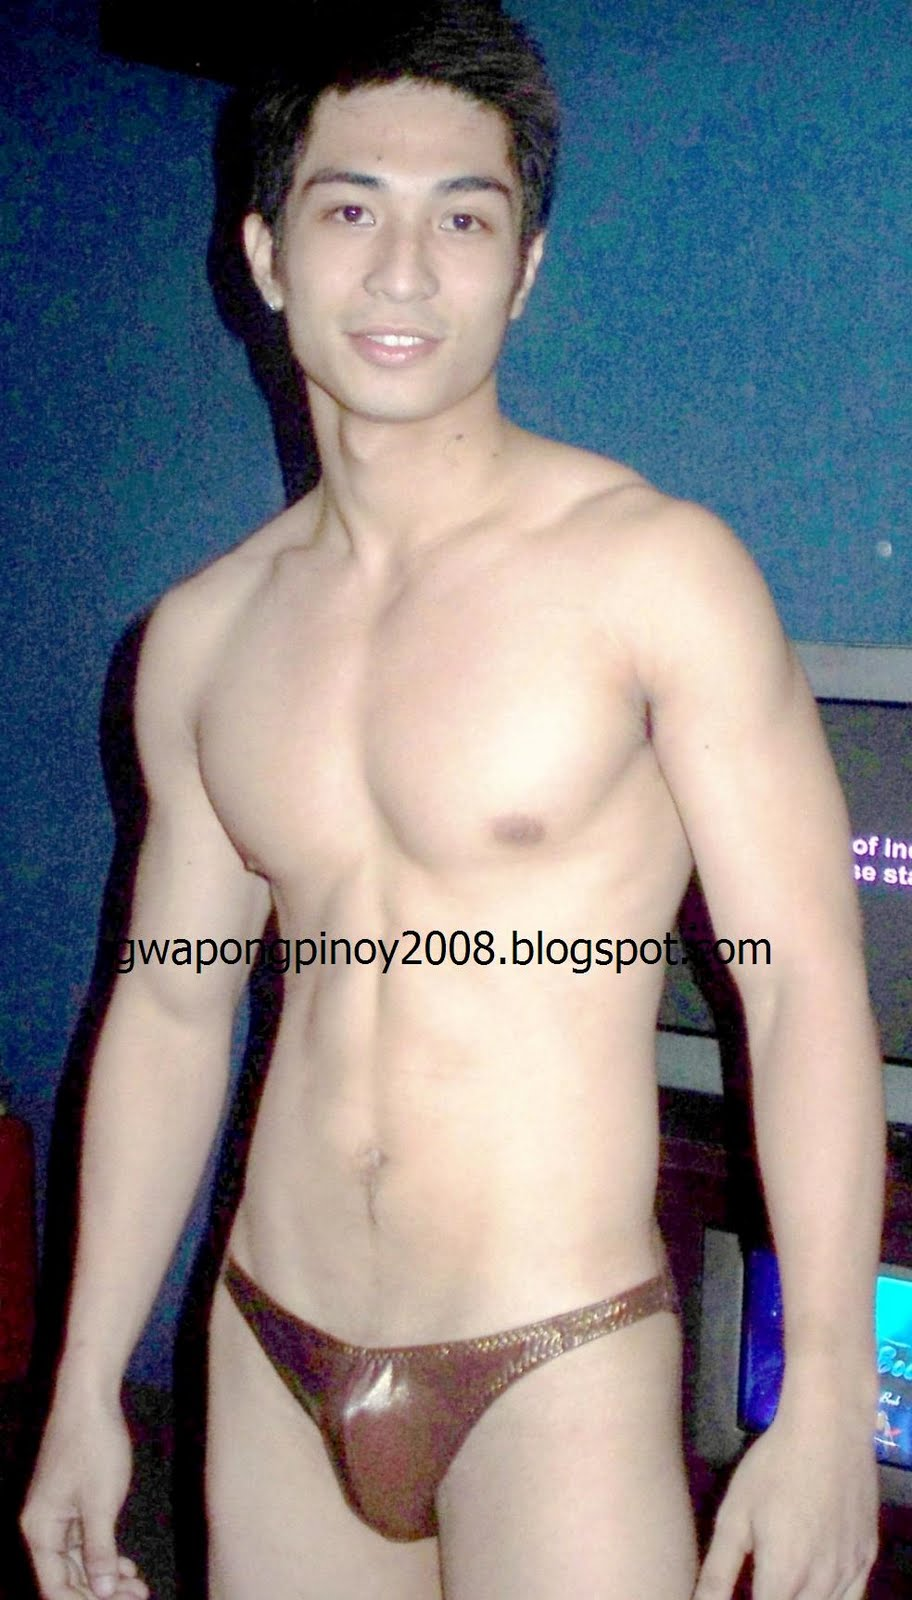 pinoy hunks unlimited